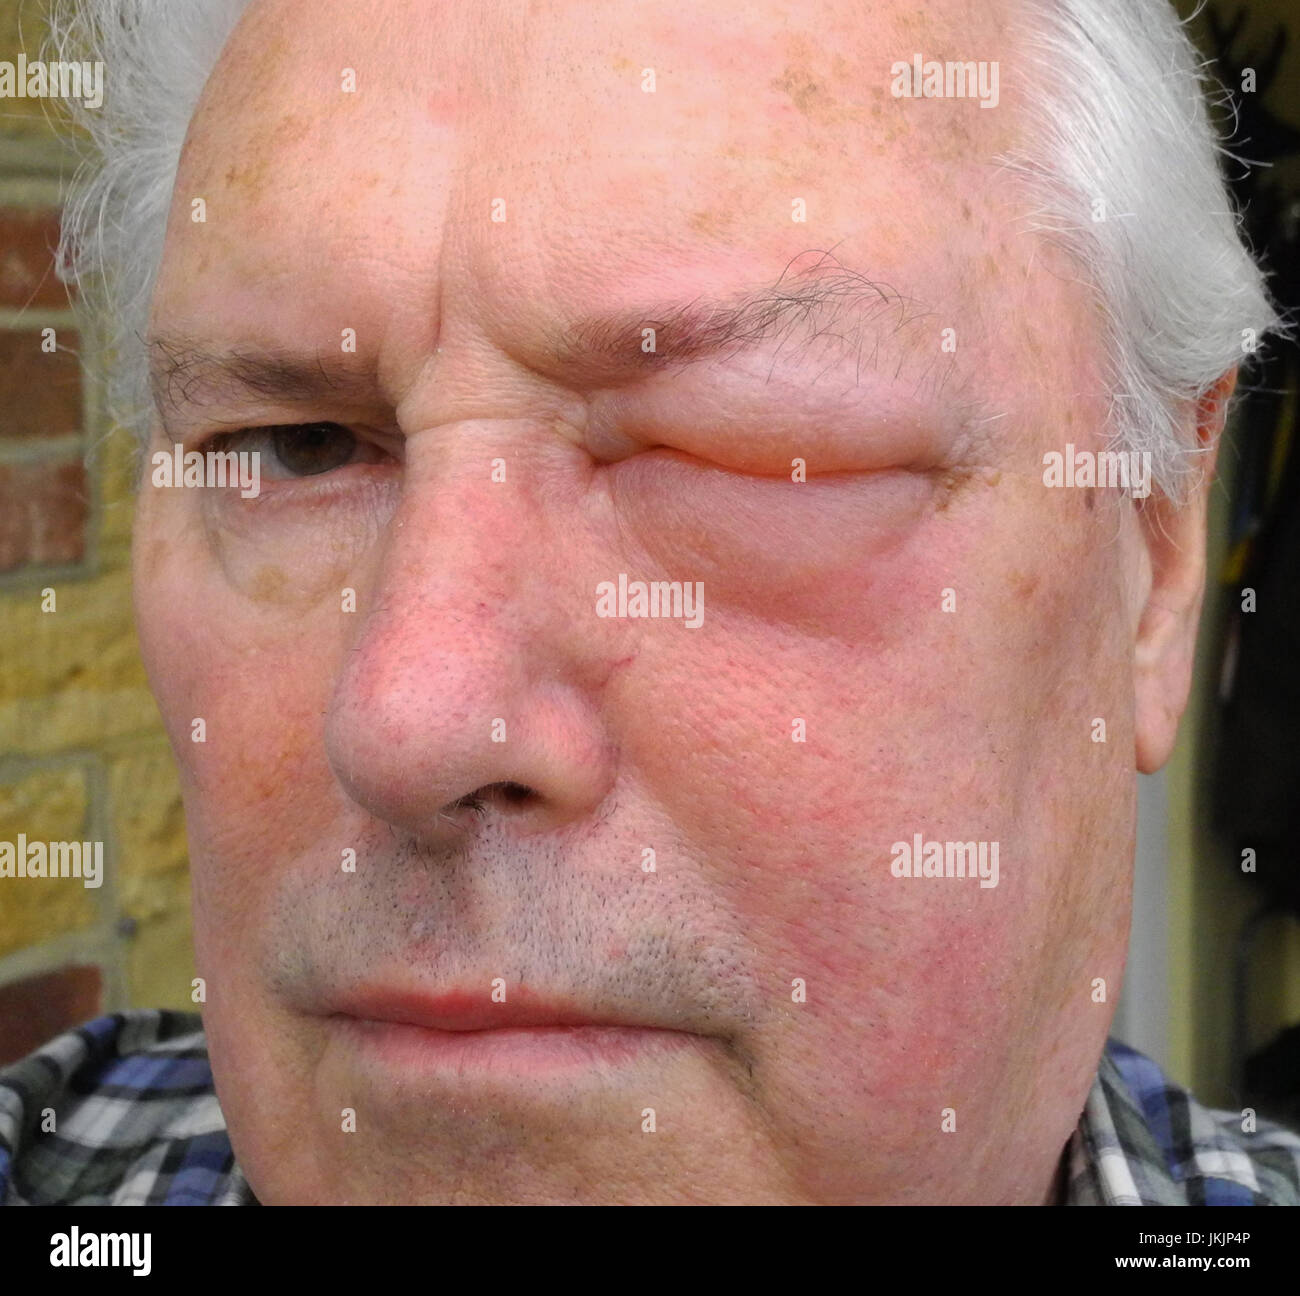 The image shows an allergic reaction to a wasp, bee, hornet, insect sting.  The reaction to a venomous sting can - Stock Image